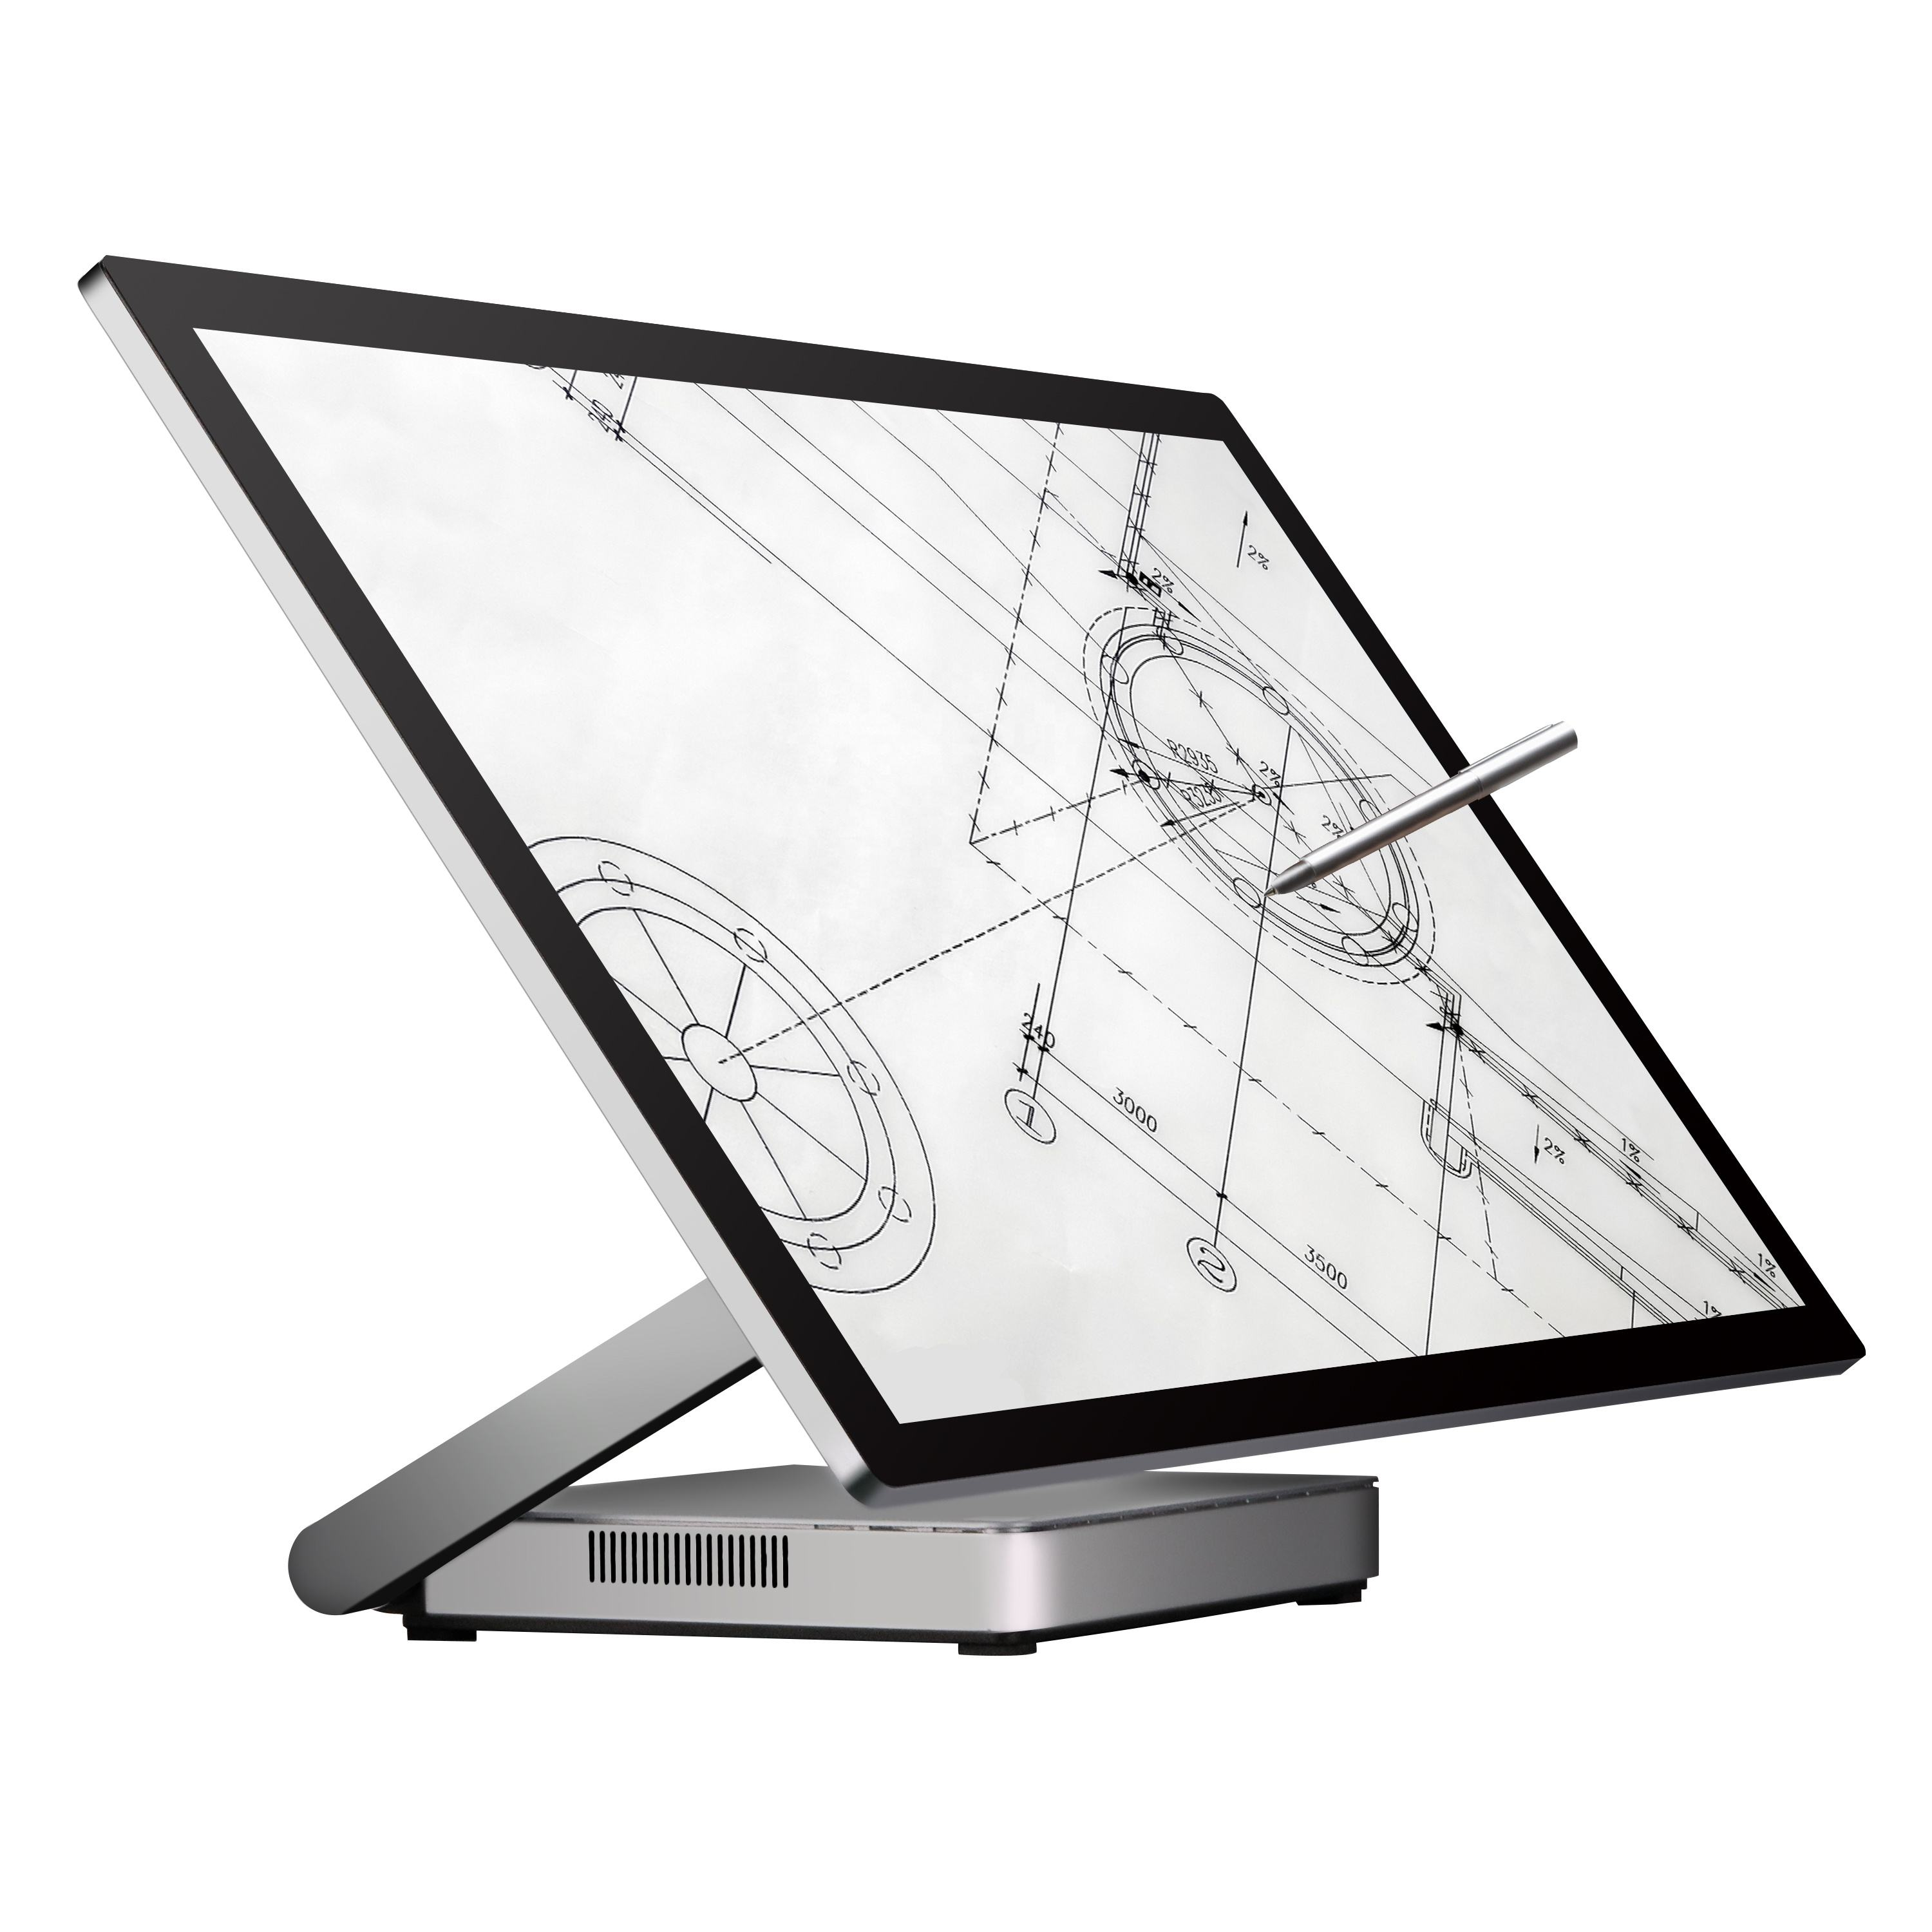 "High-end-computer hardware 23.8 ""aio pc monoblock touch computer i5 i7"